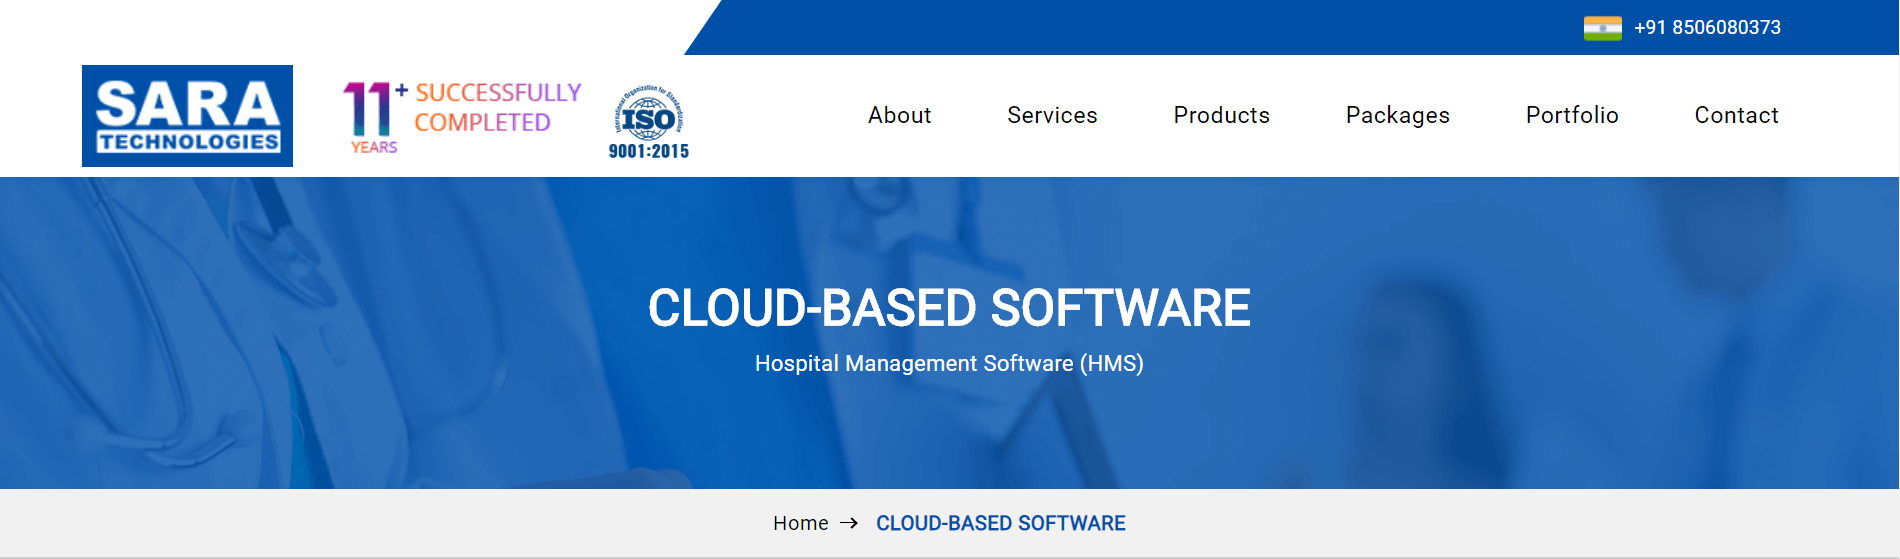 SARA - Best Hospital Management Software